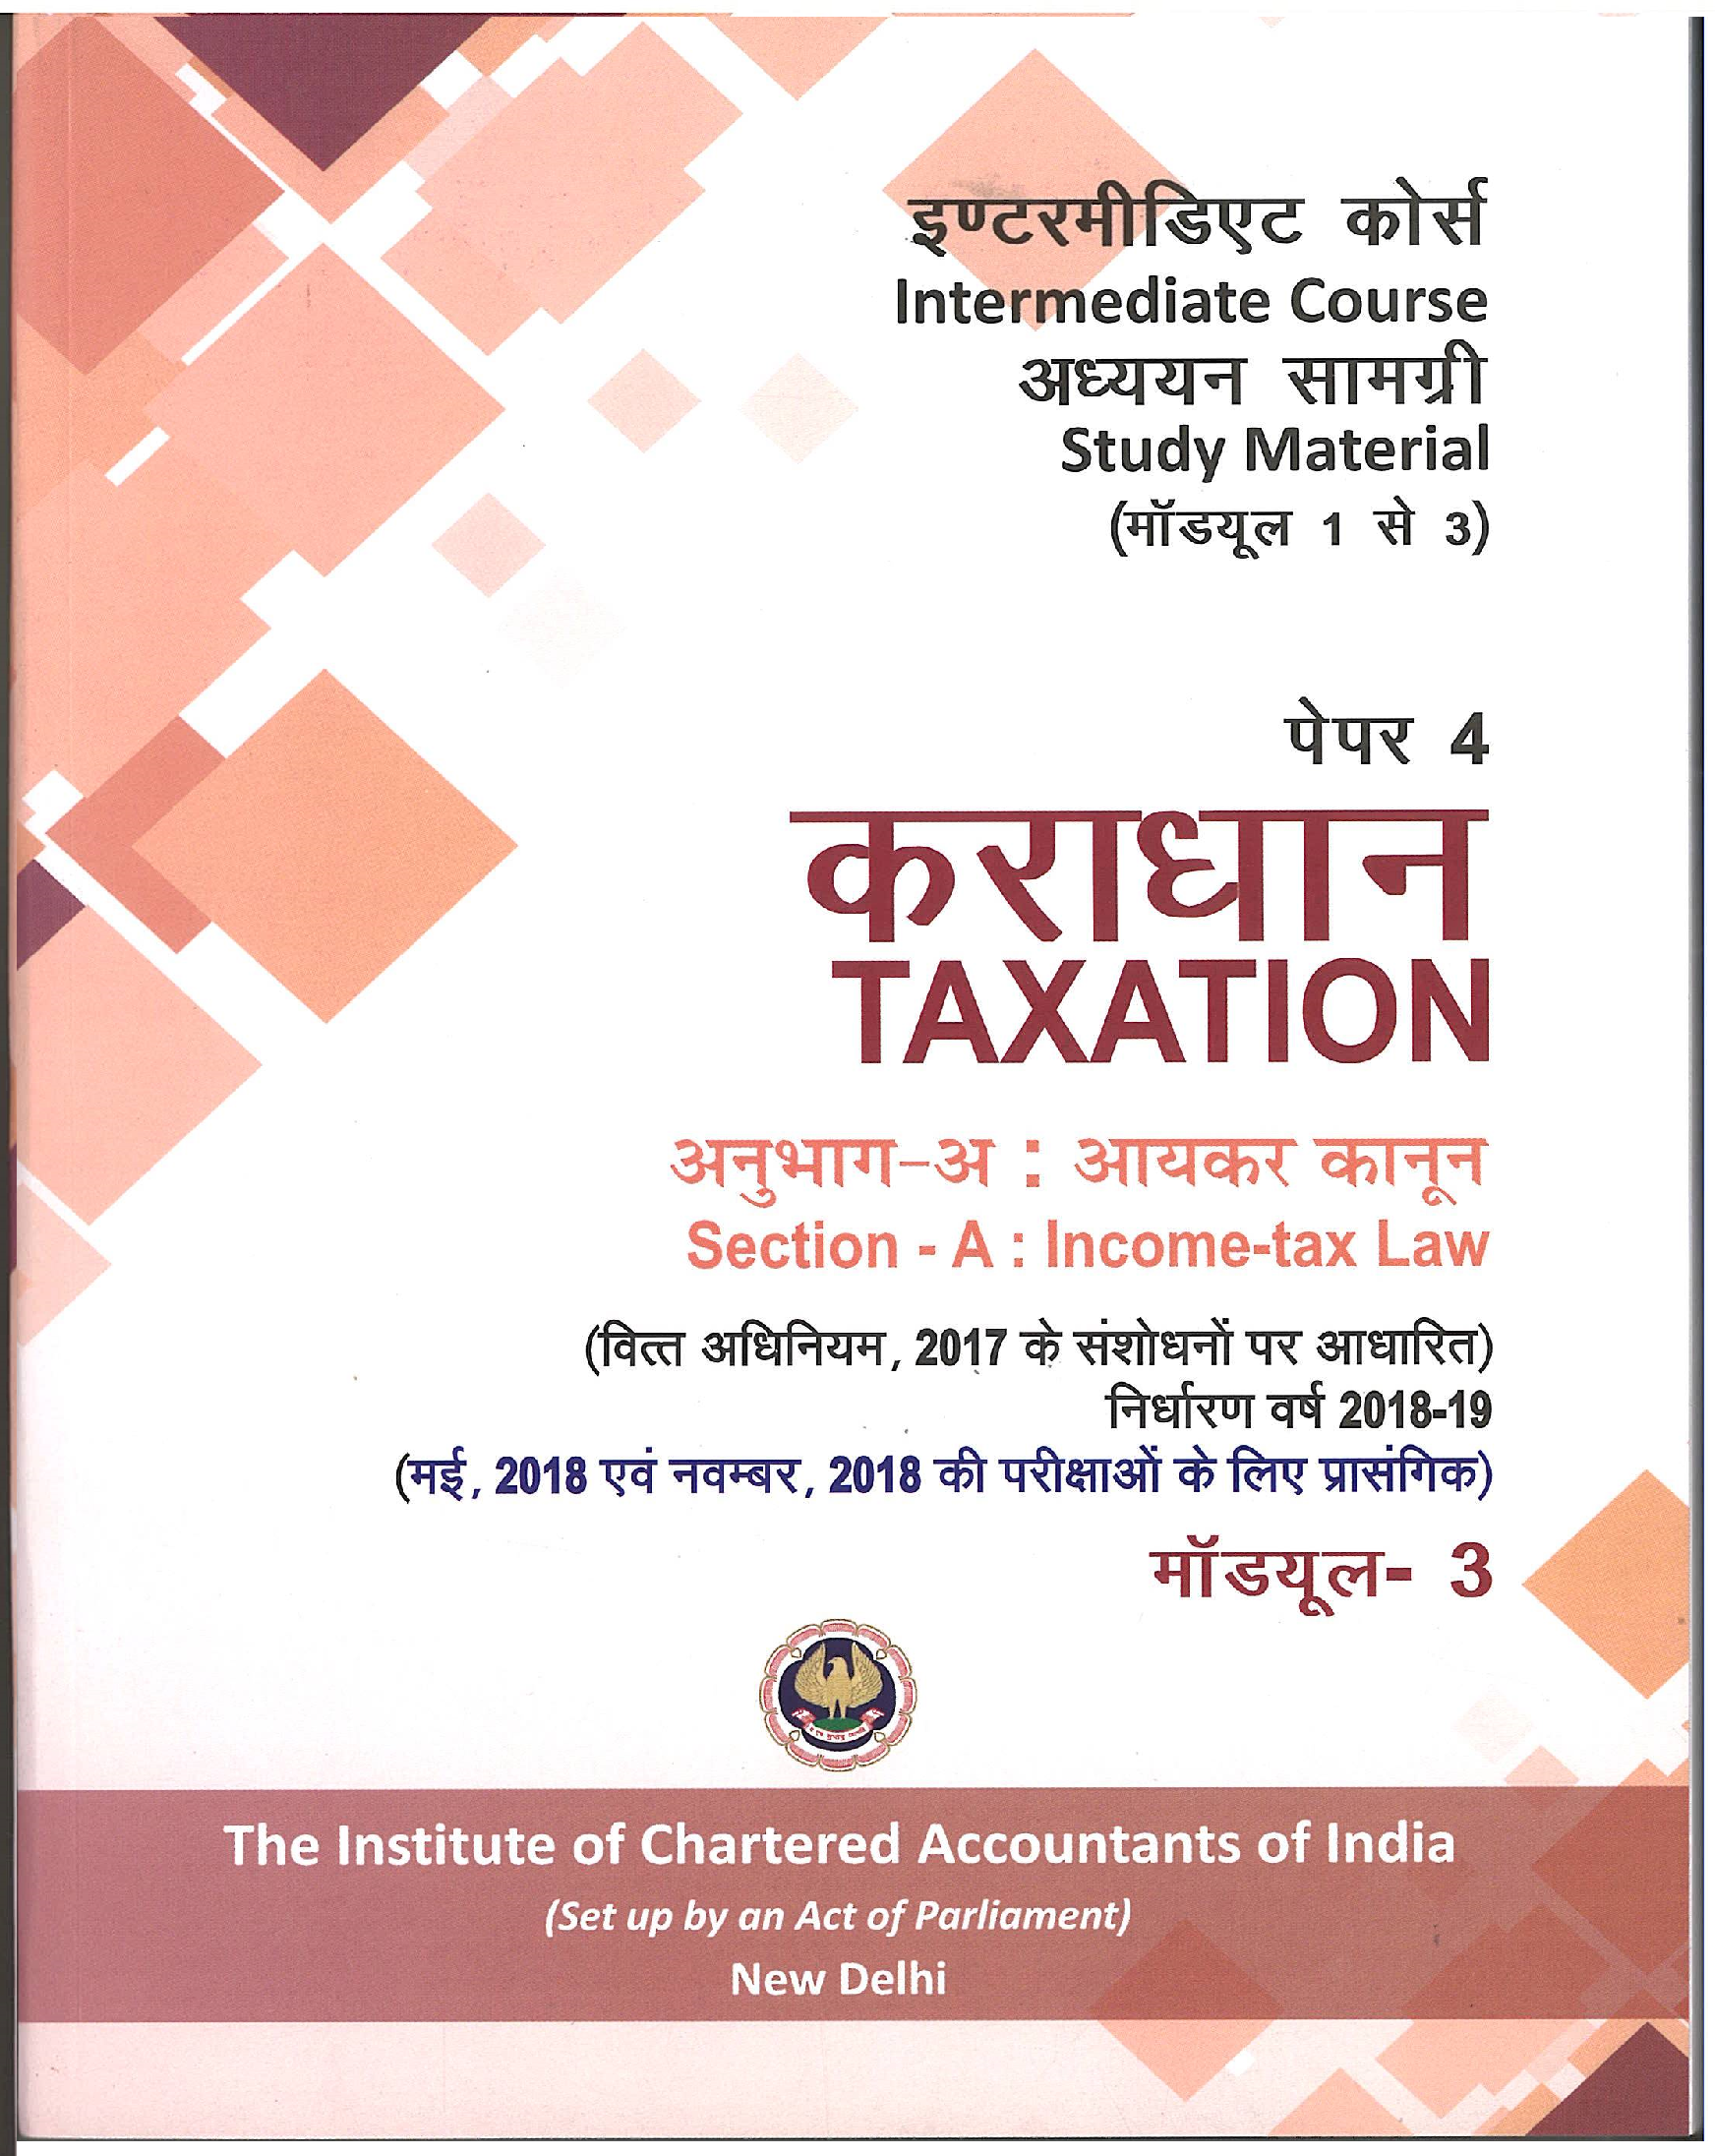 Intermediate Course (Hindi) Study Material  Taxation - Income Tax Law (Module 1-3) (July, 2017)